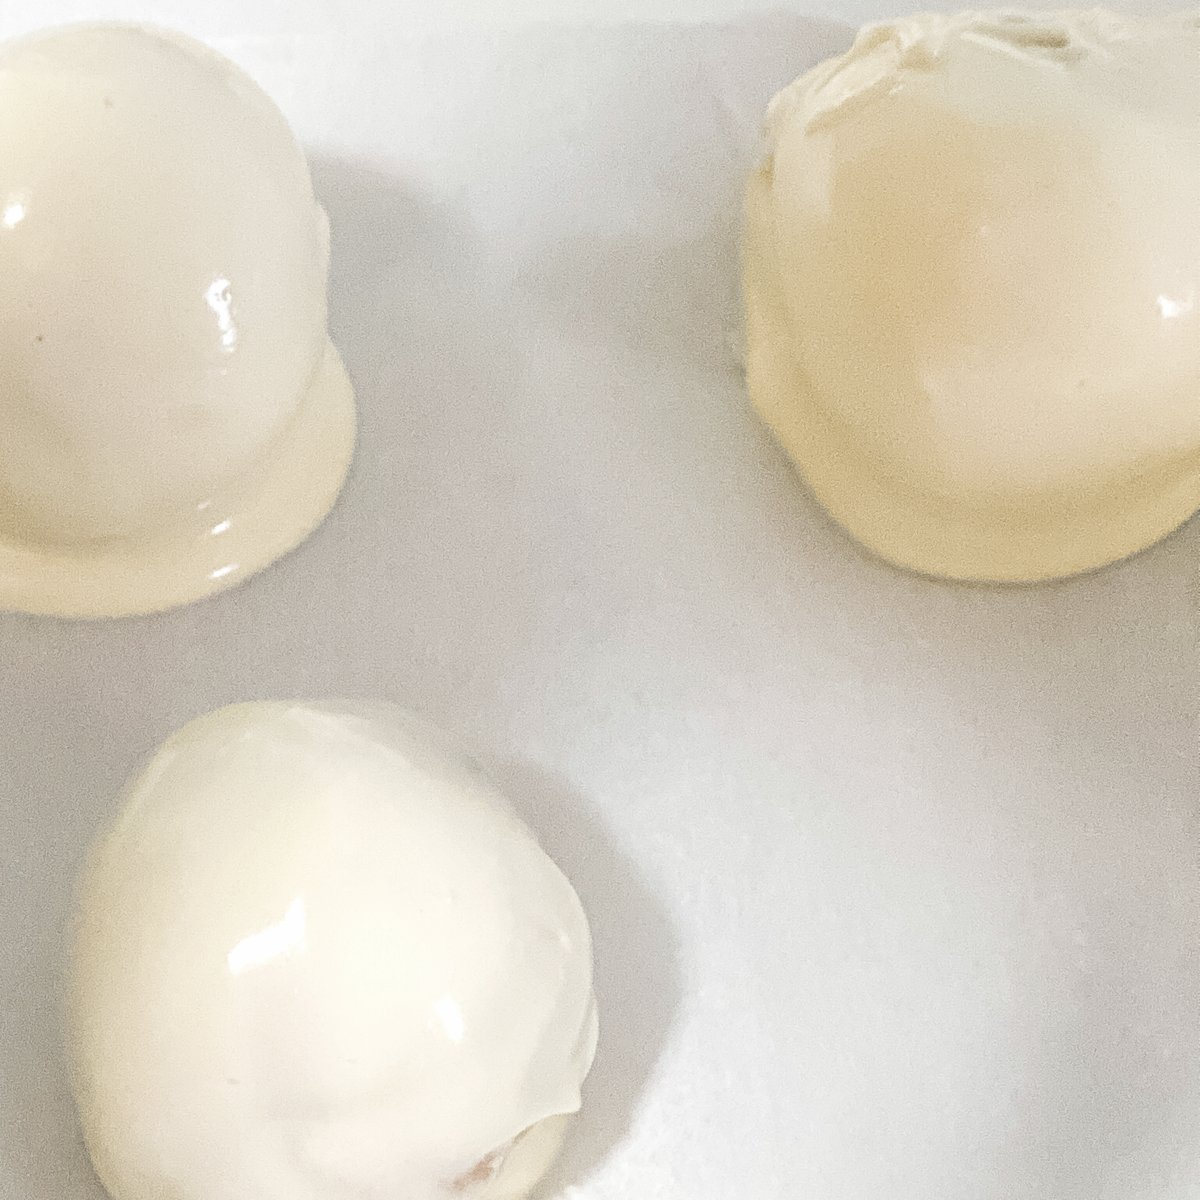 White chocolate covered cake truffles on parchment paper